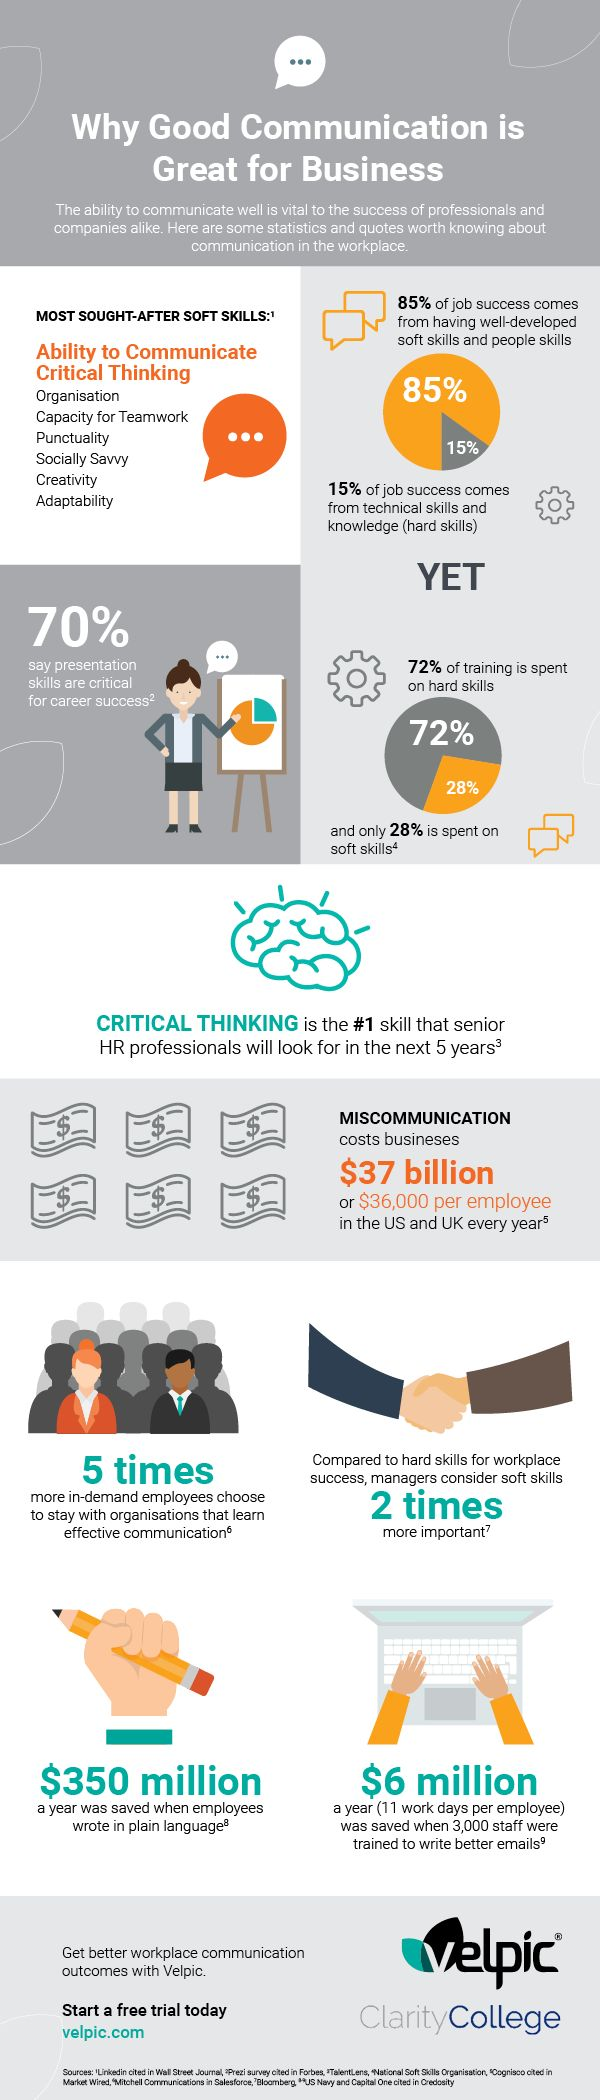 Why Good Communication Is Great For Business Infographic - http://elearninginfographics.com/why-good-communication-is-great-for-business/